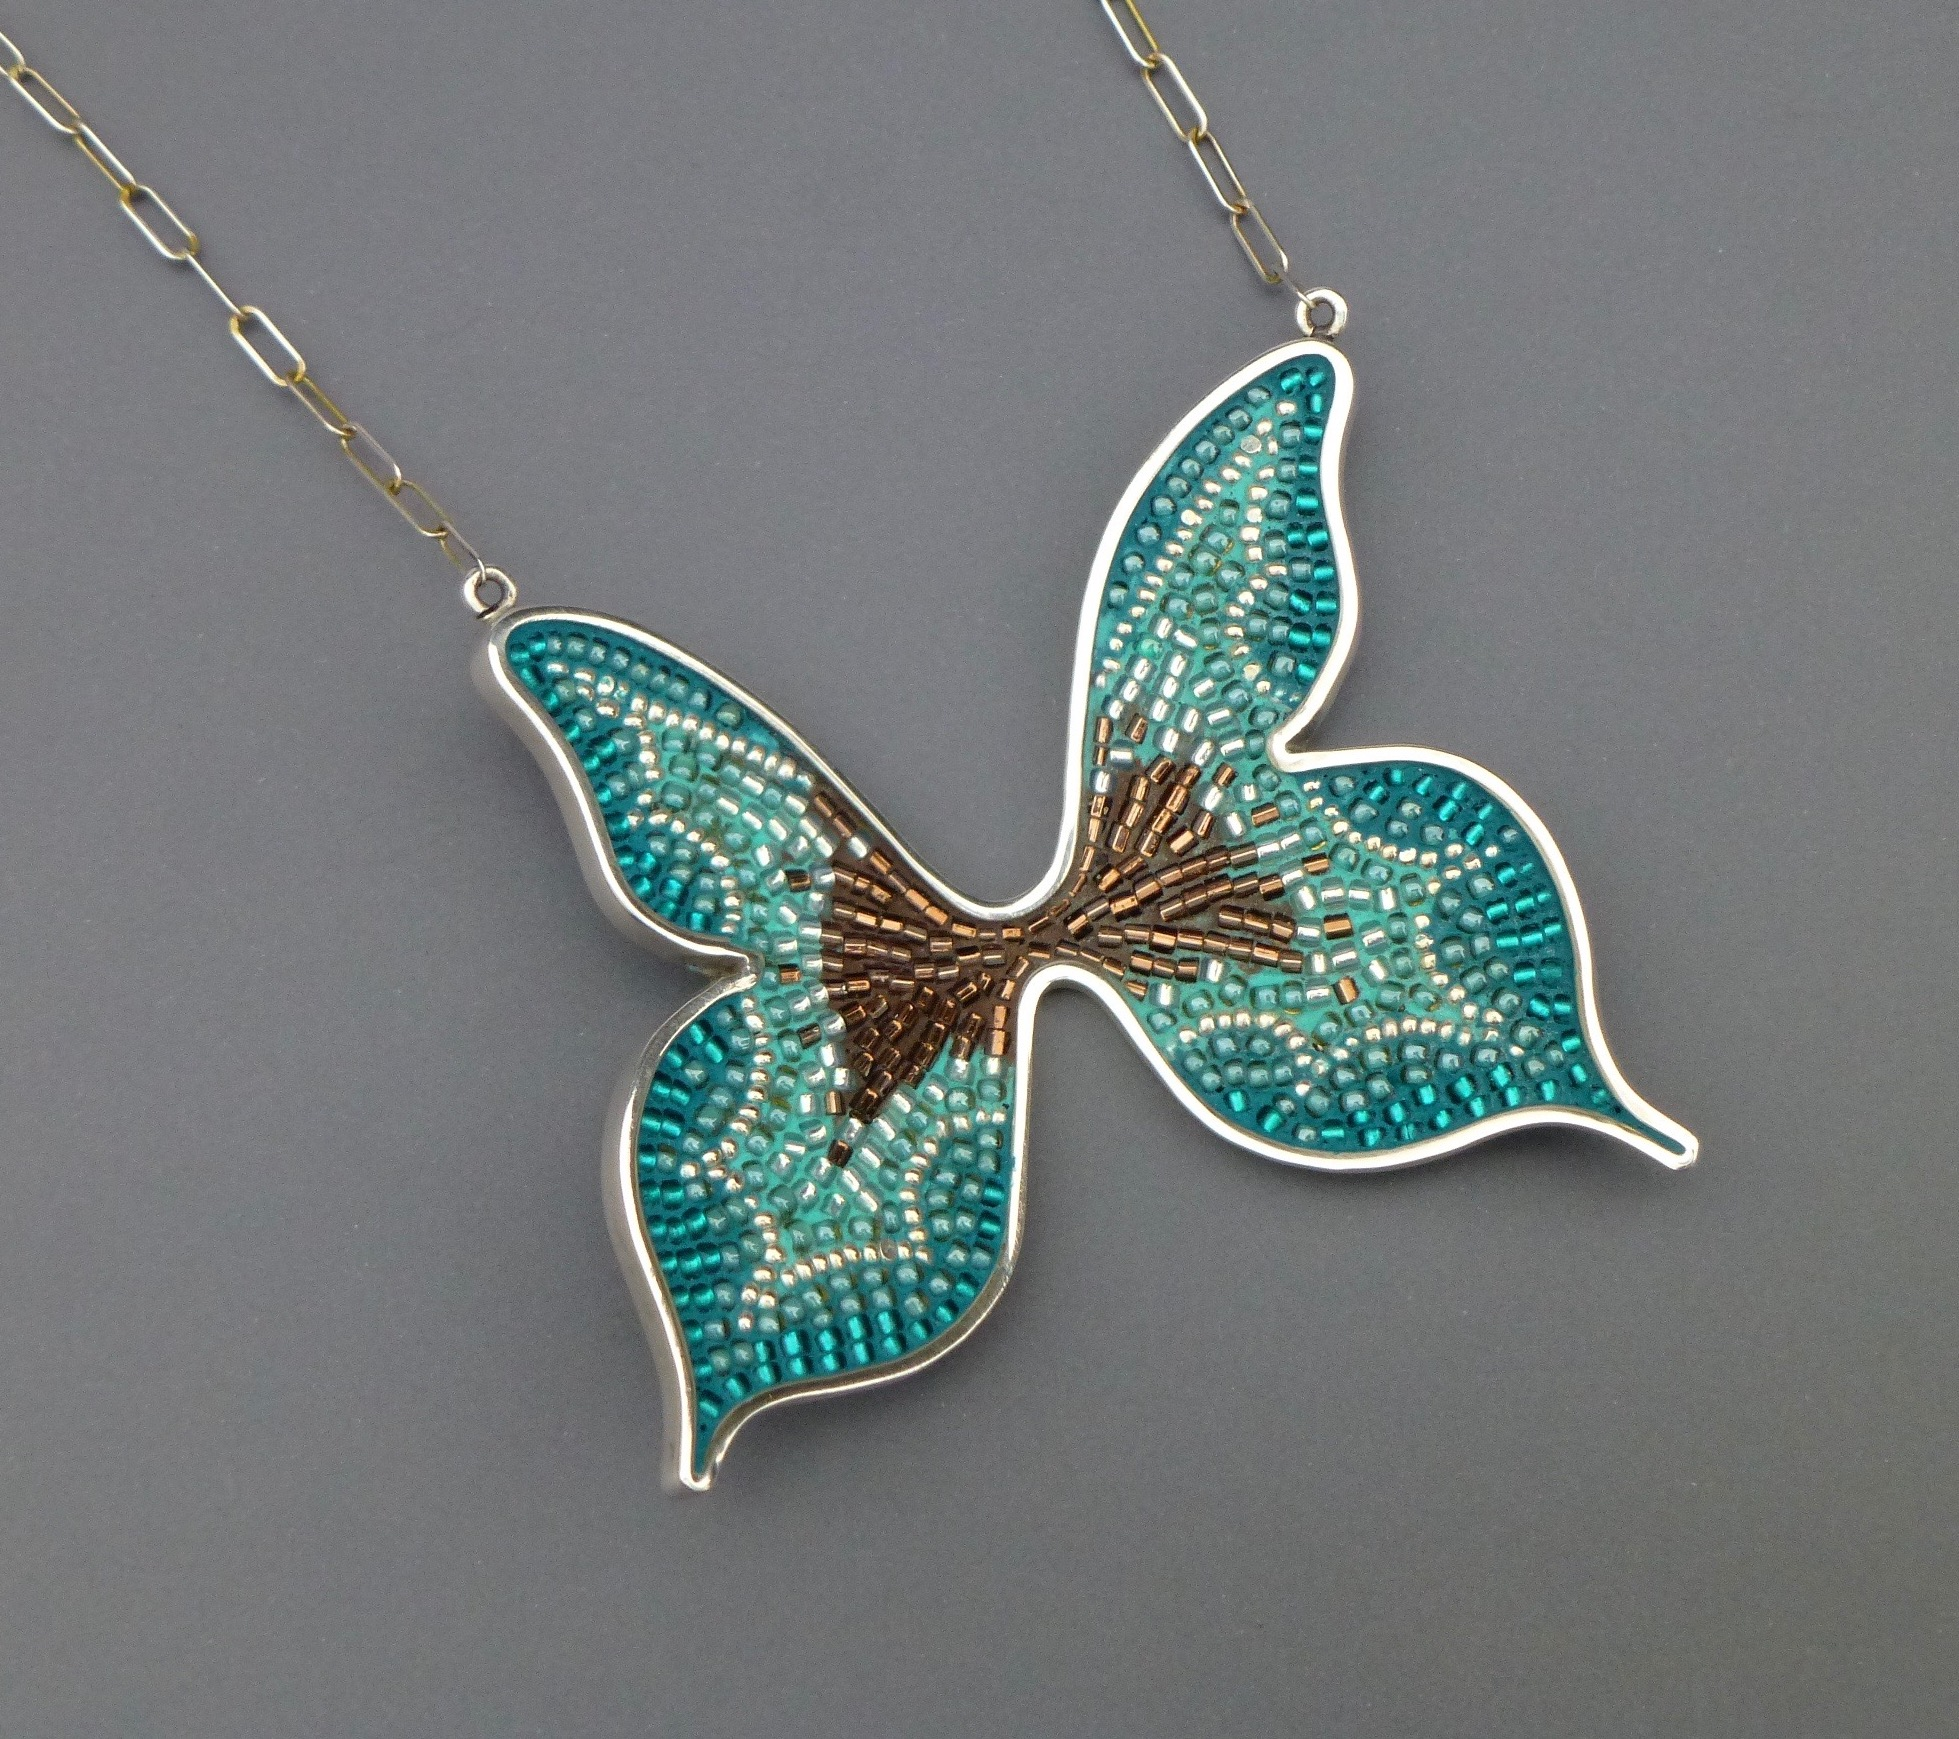 Courtney Denise Lipson, Butterfly Pendant, sterling silver pendant with micro-mosaic